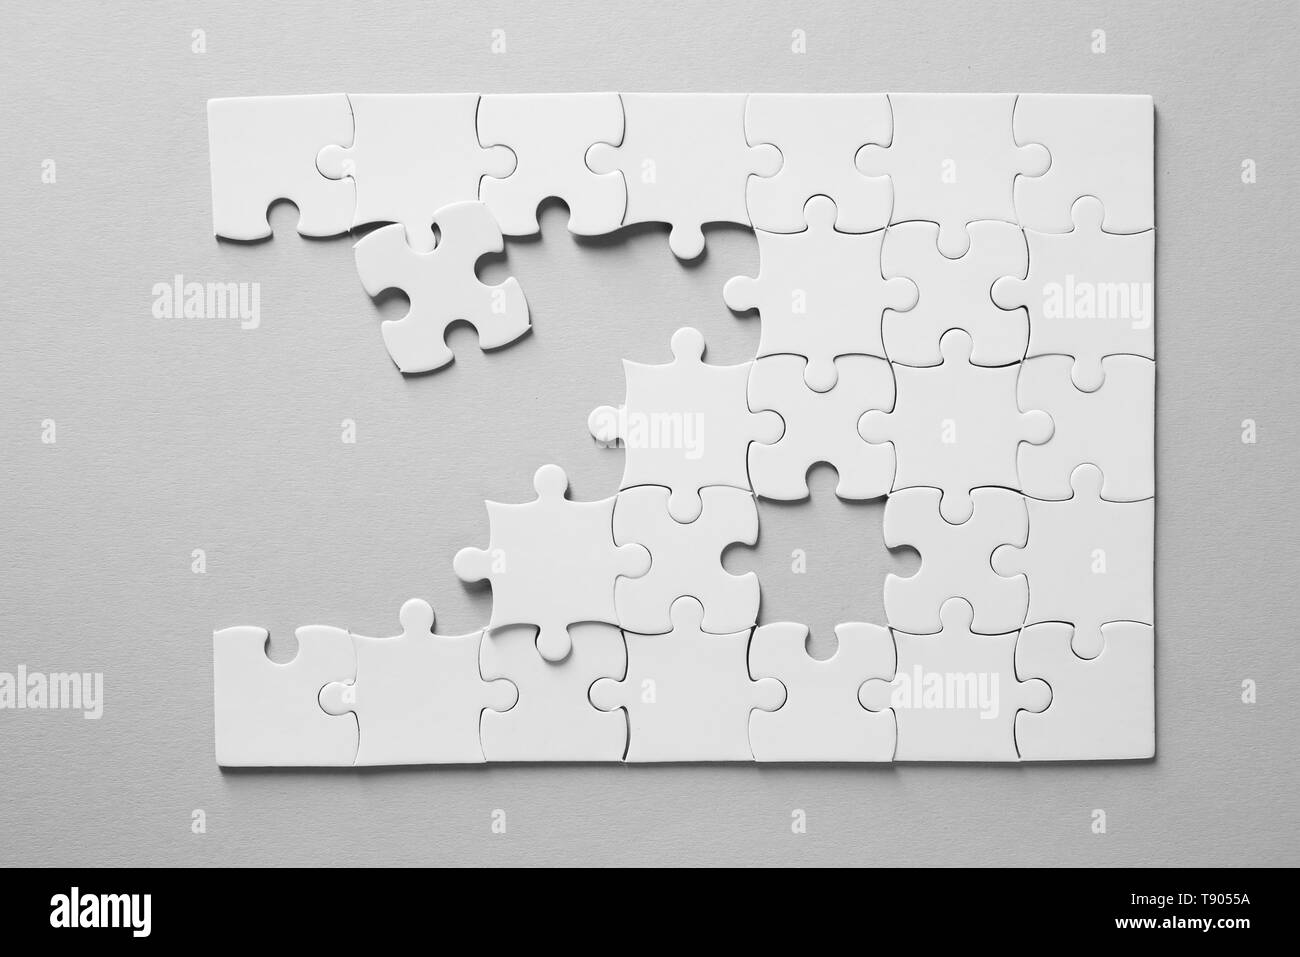 Incomplete jigsaw puzzle on light background - Stock Image